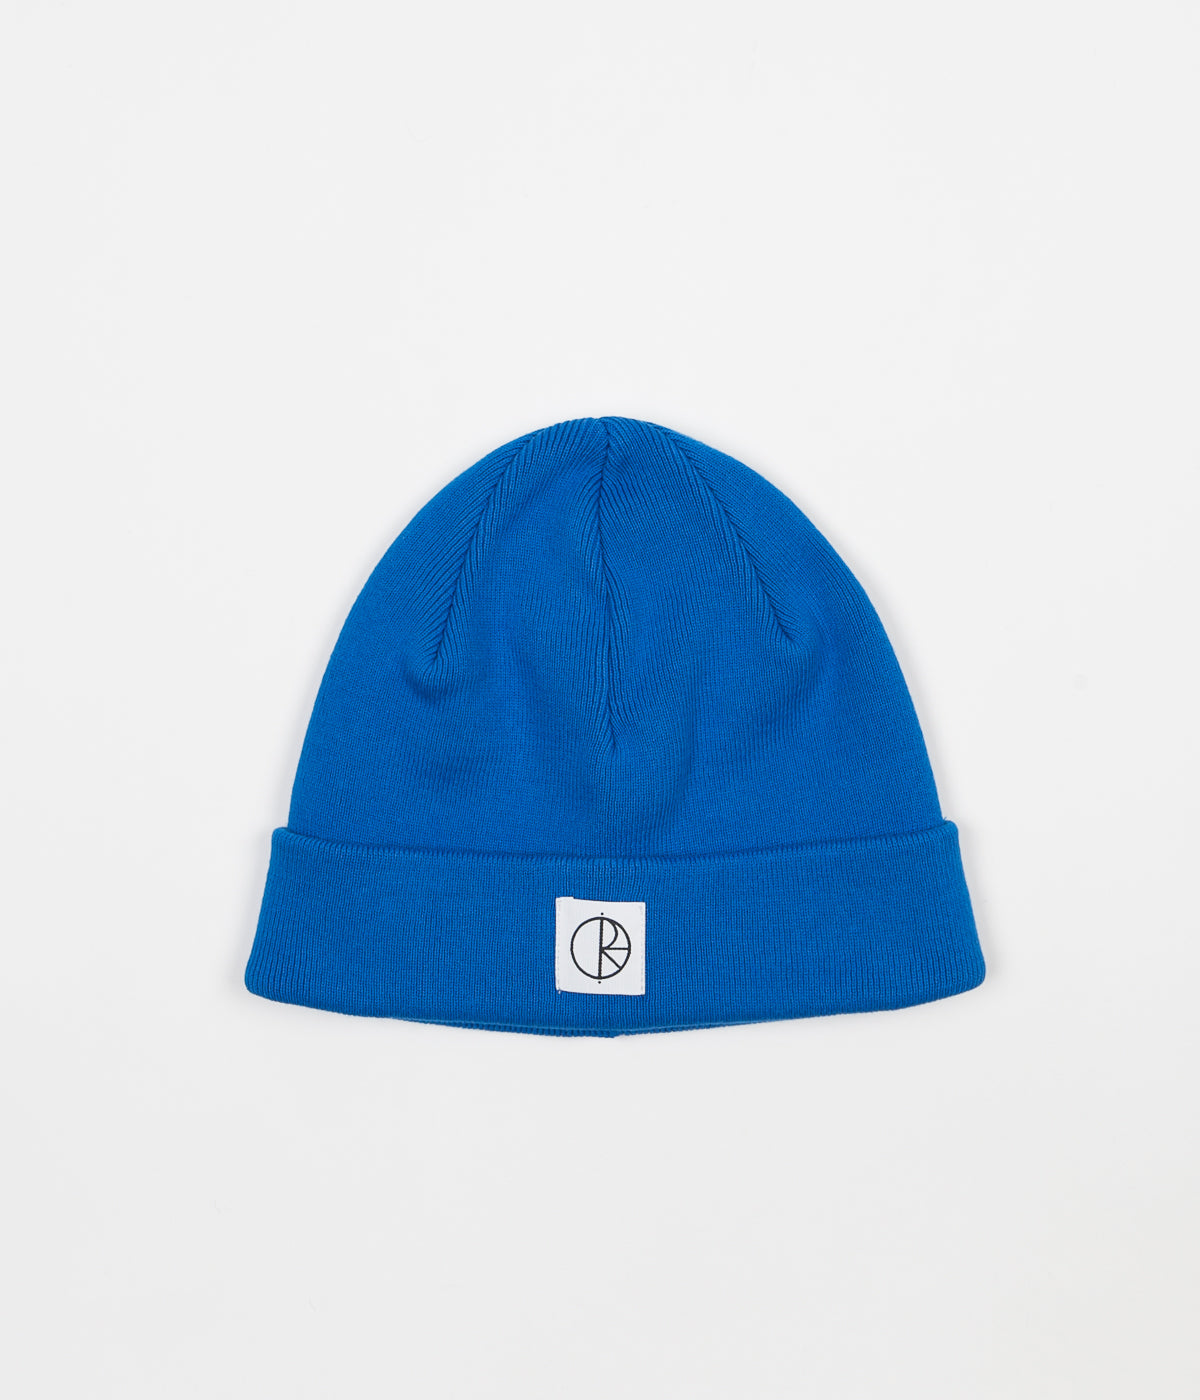 ccb582e24c7 Polar Cotton Beanie - 80 s Blue